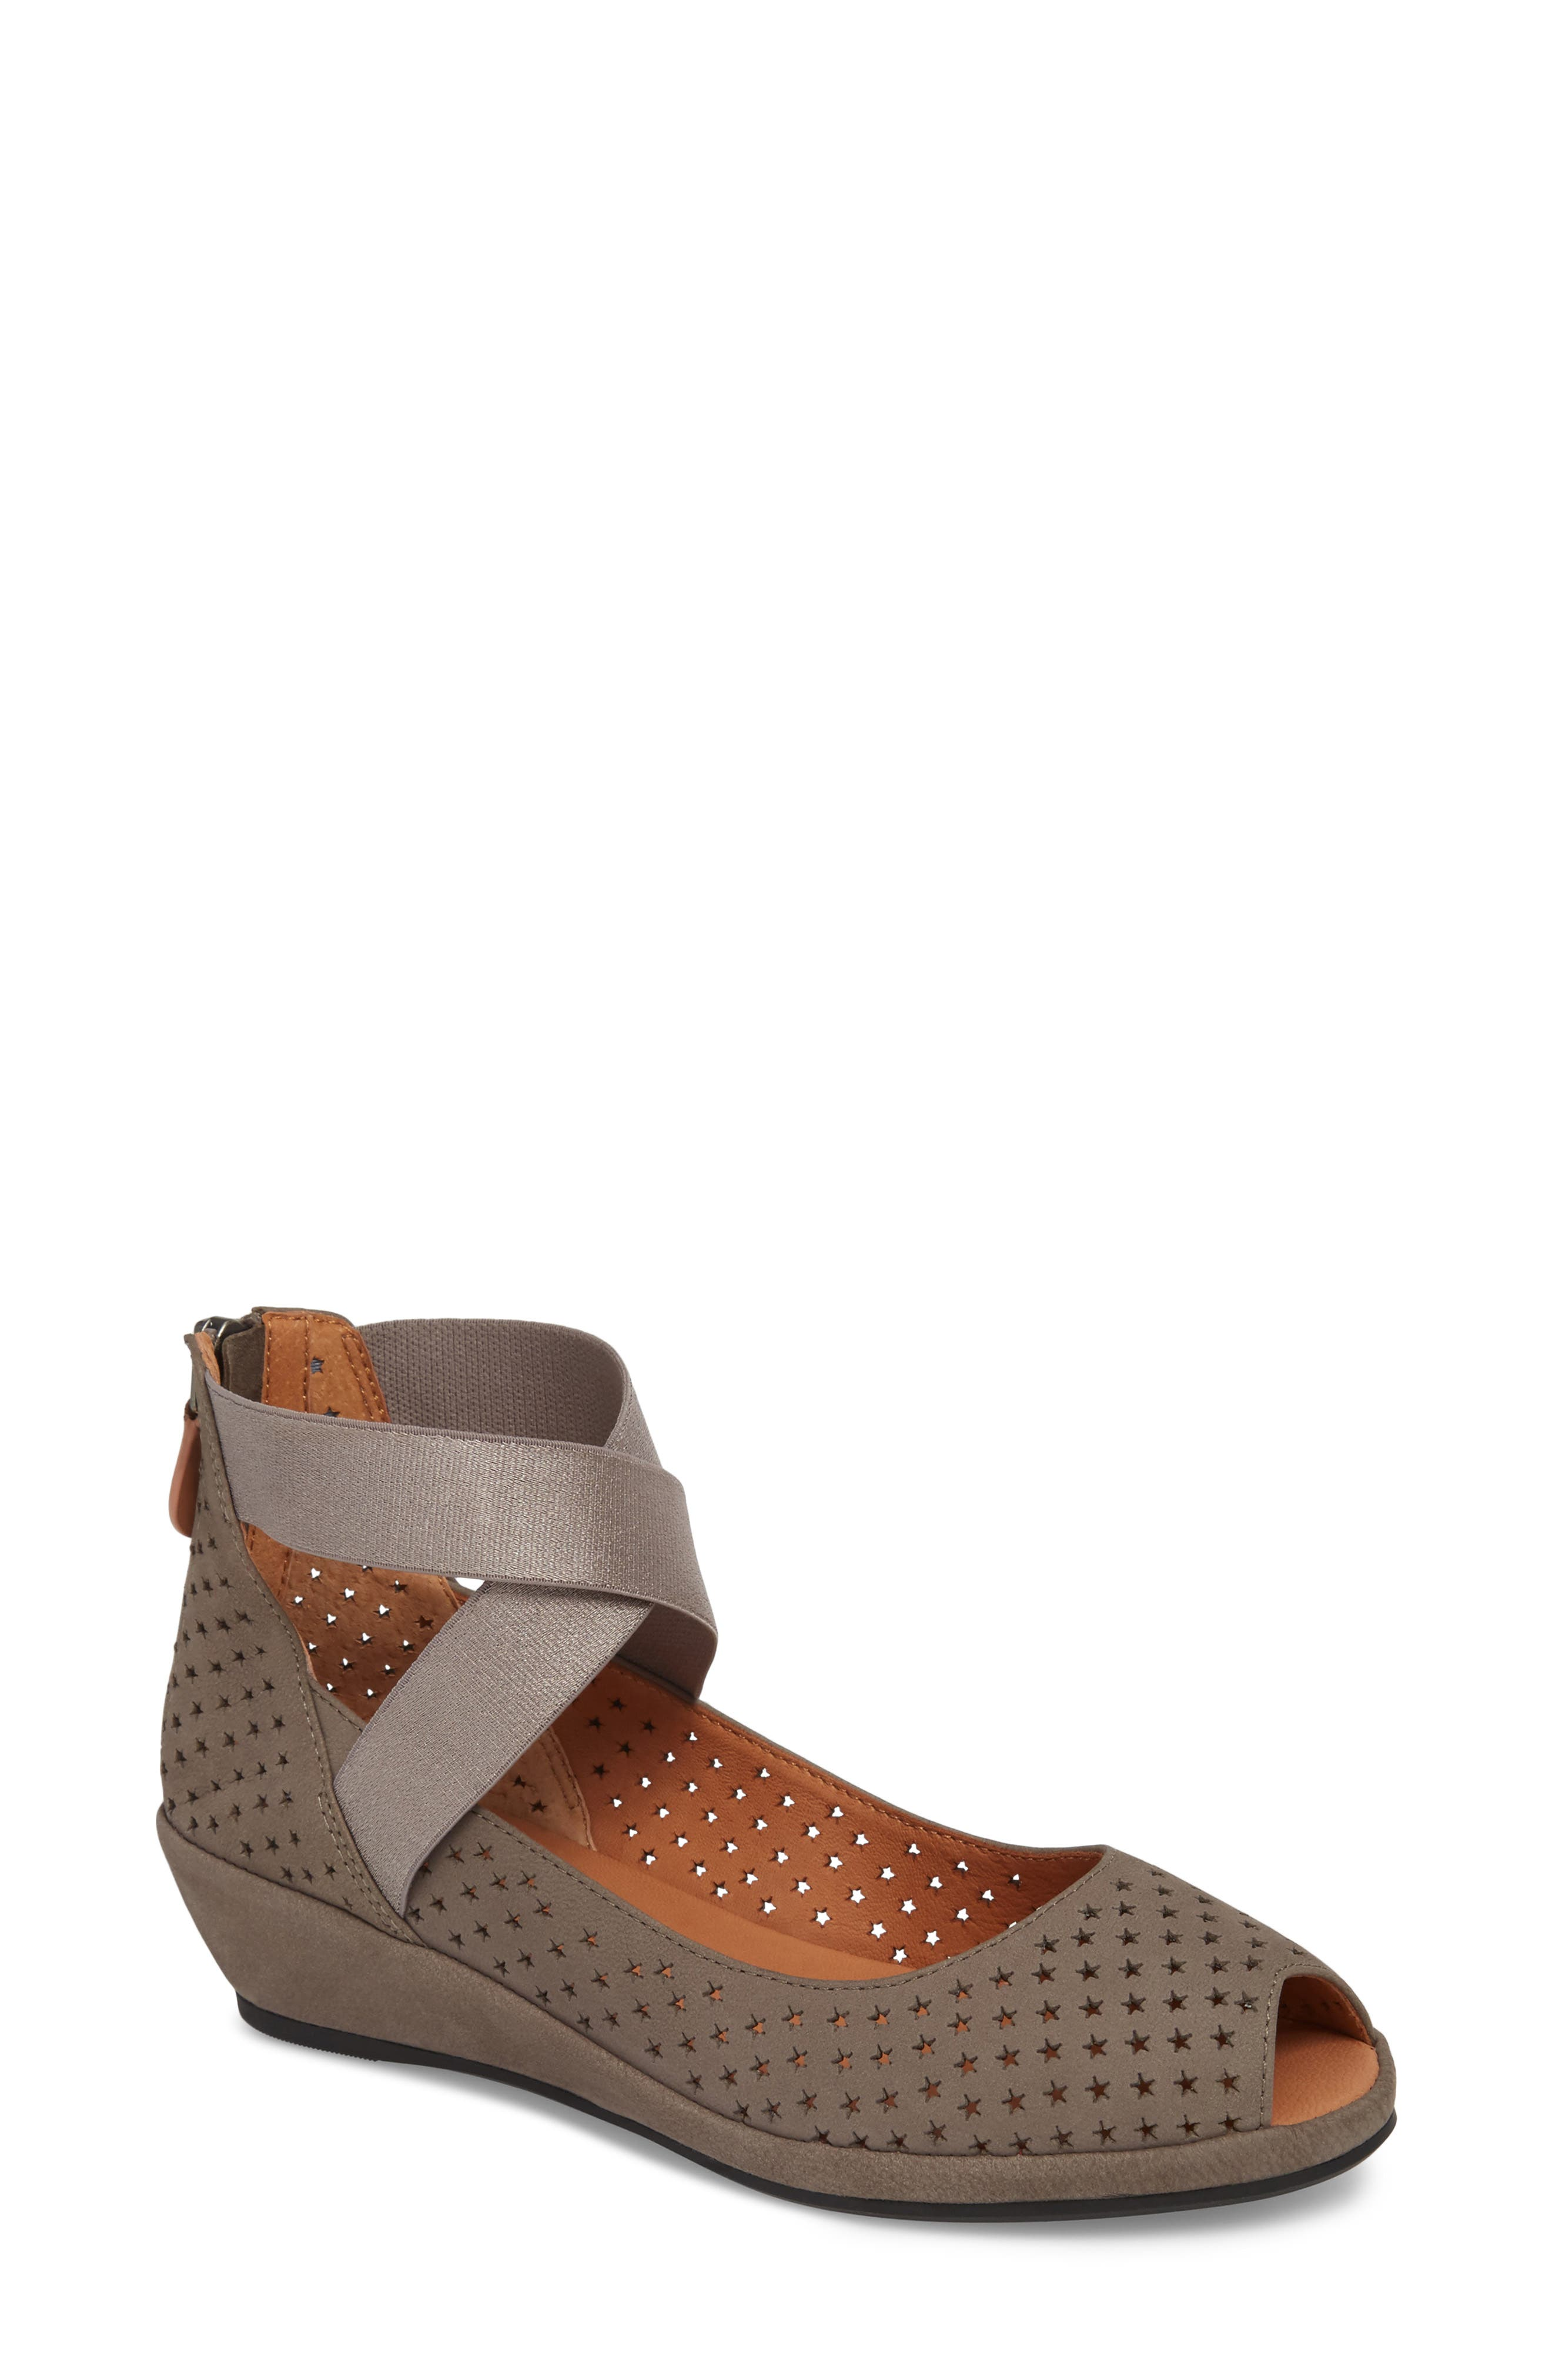 GENTLE SOULS BY KENNETH COLE Lisa Wedge Sandal, Main, color, 090